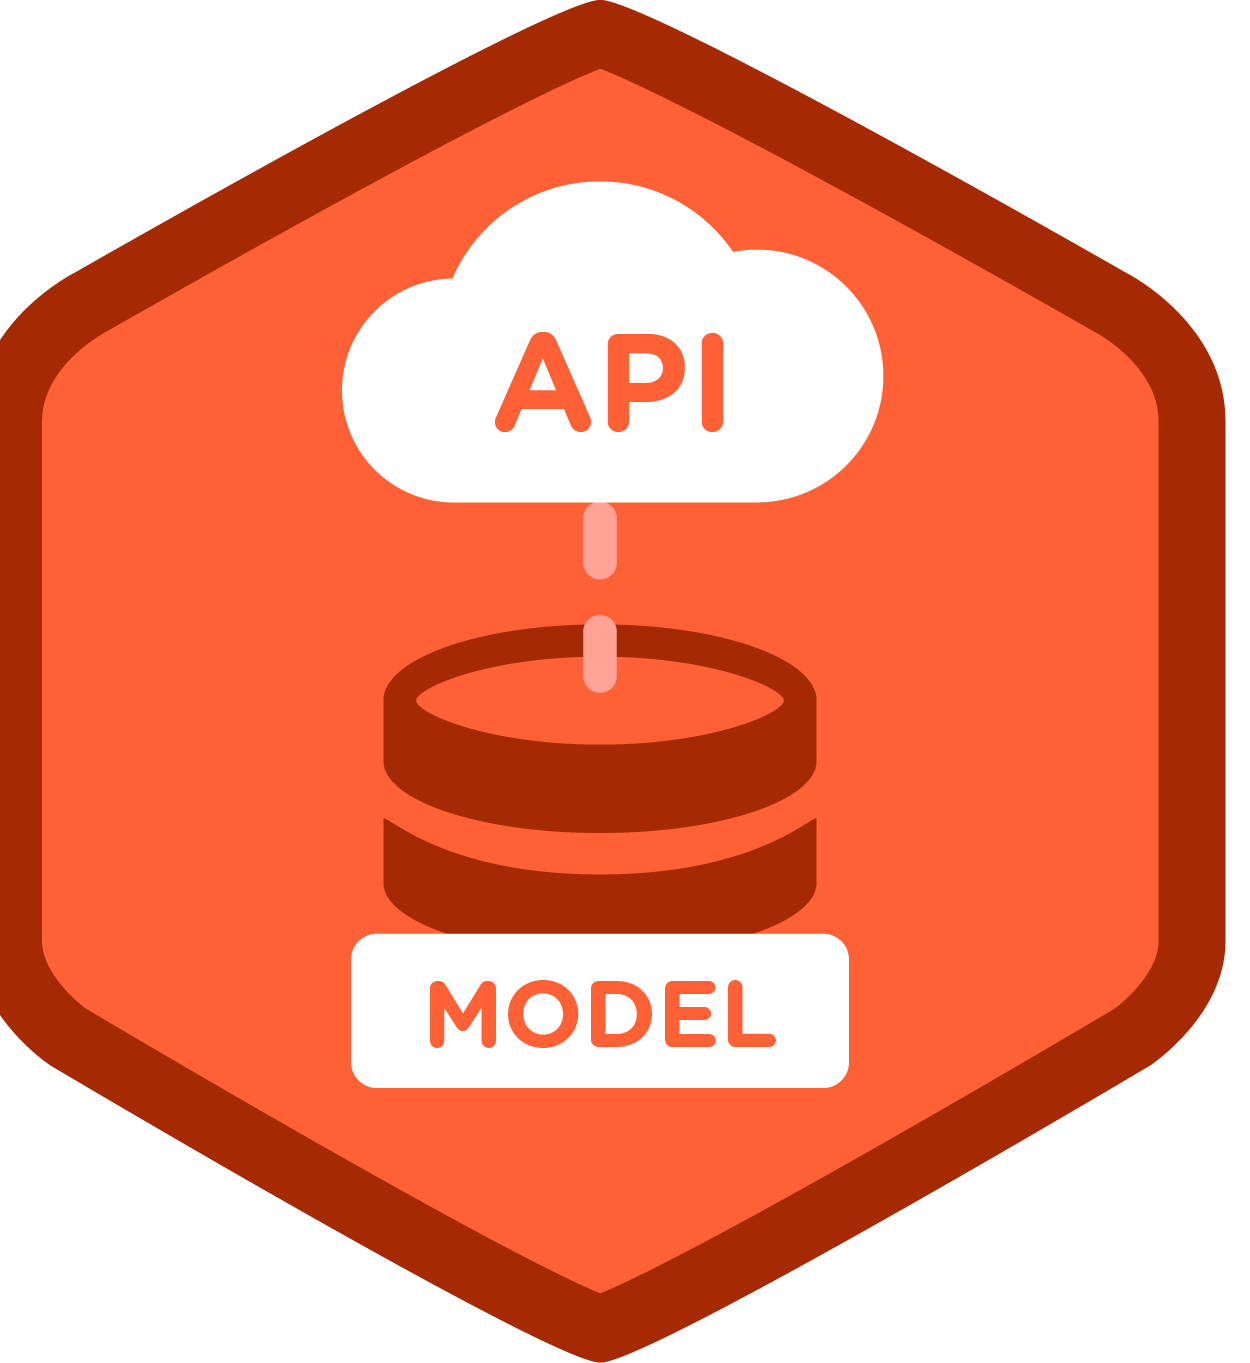 Modeling Data for the API